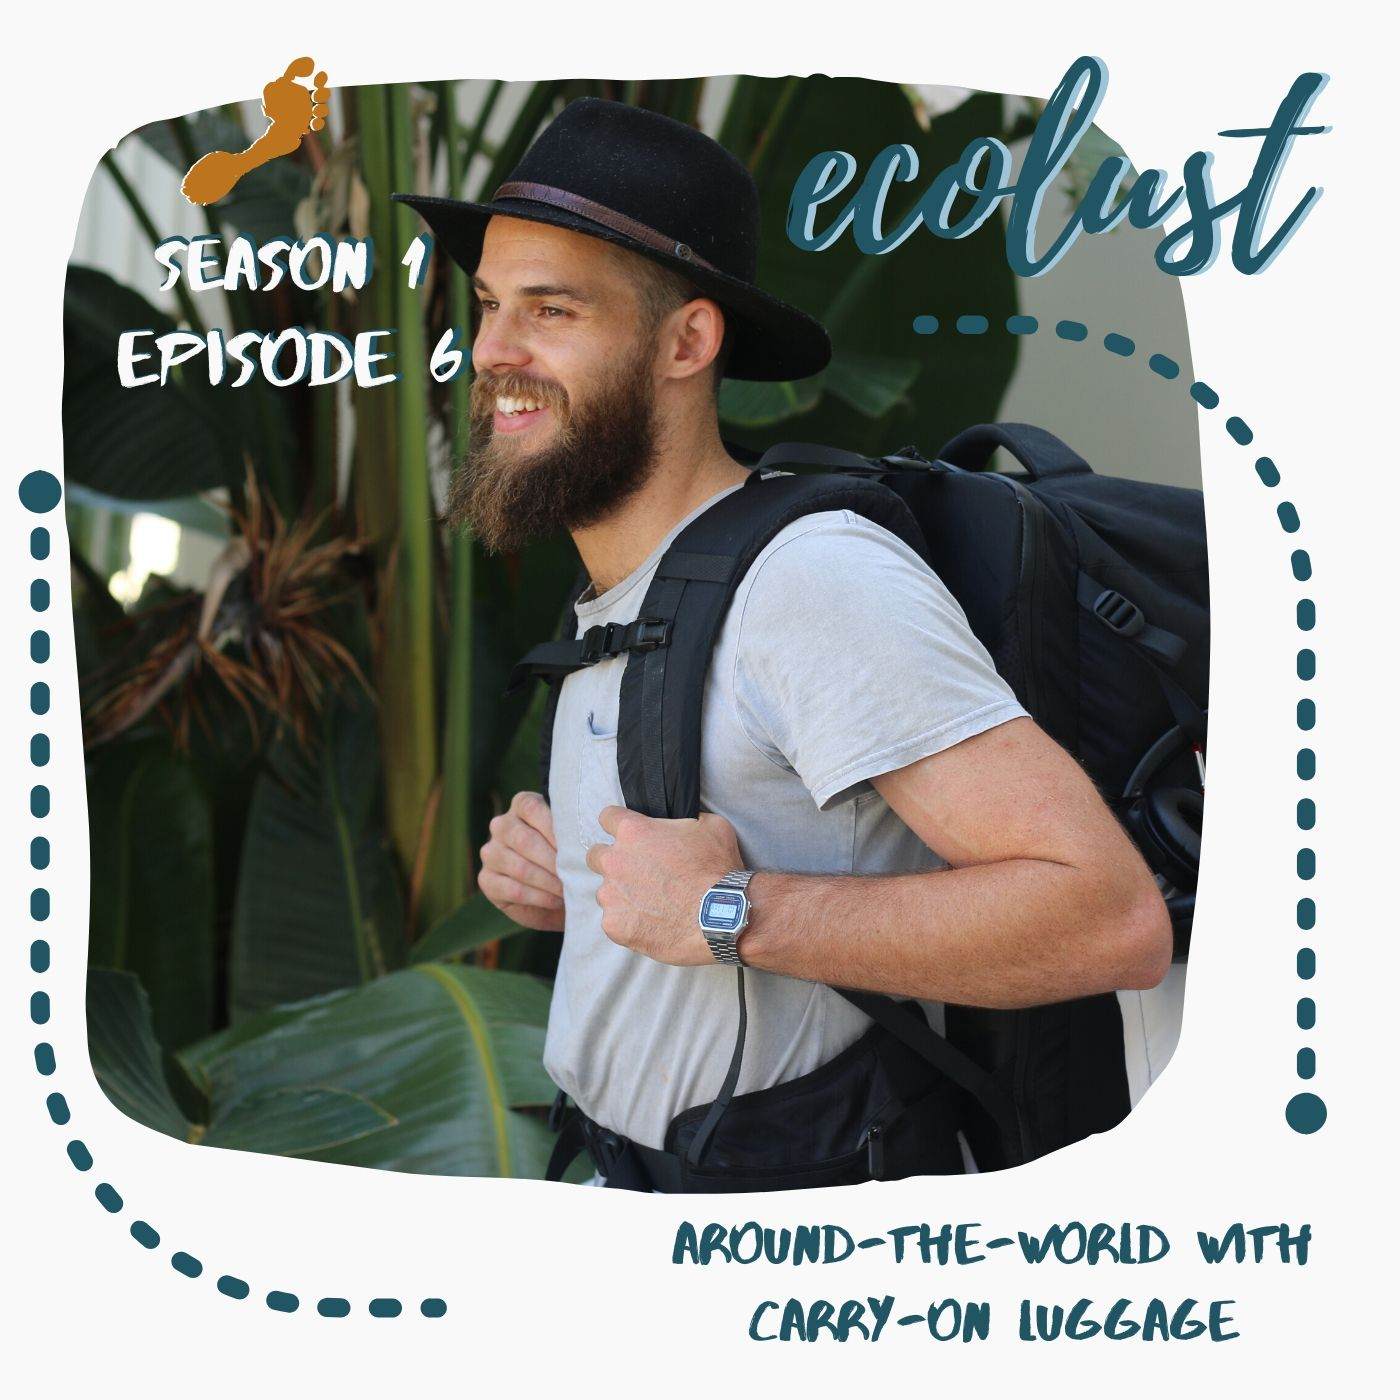 EcoLust S1E6: Around-the-World with Carry-on Luggage